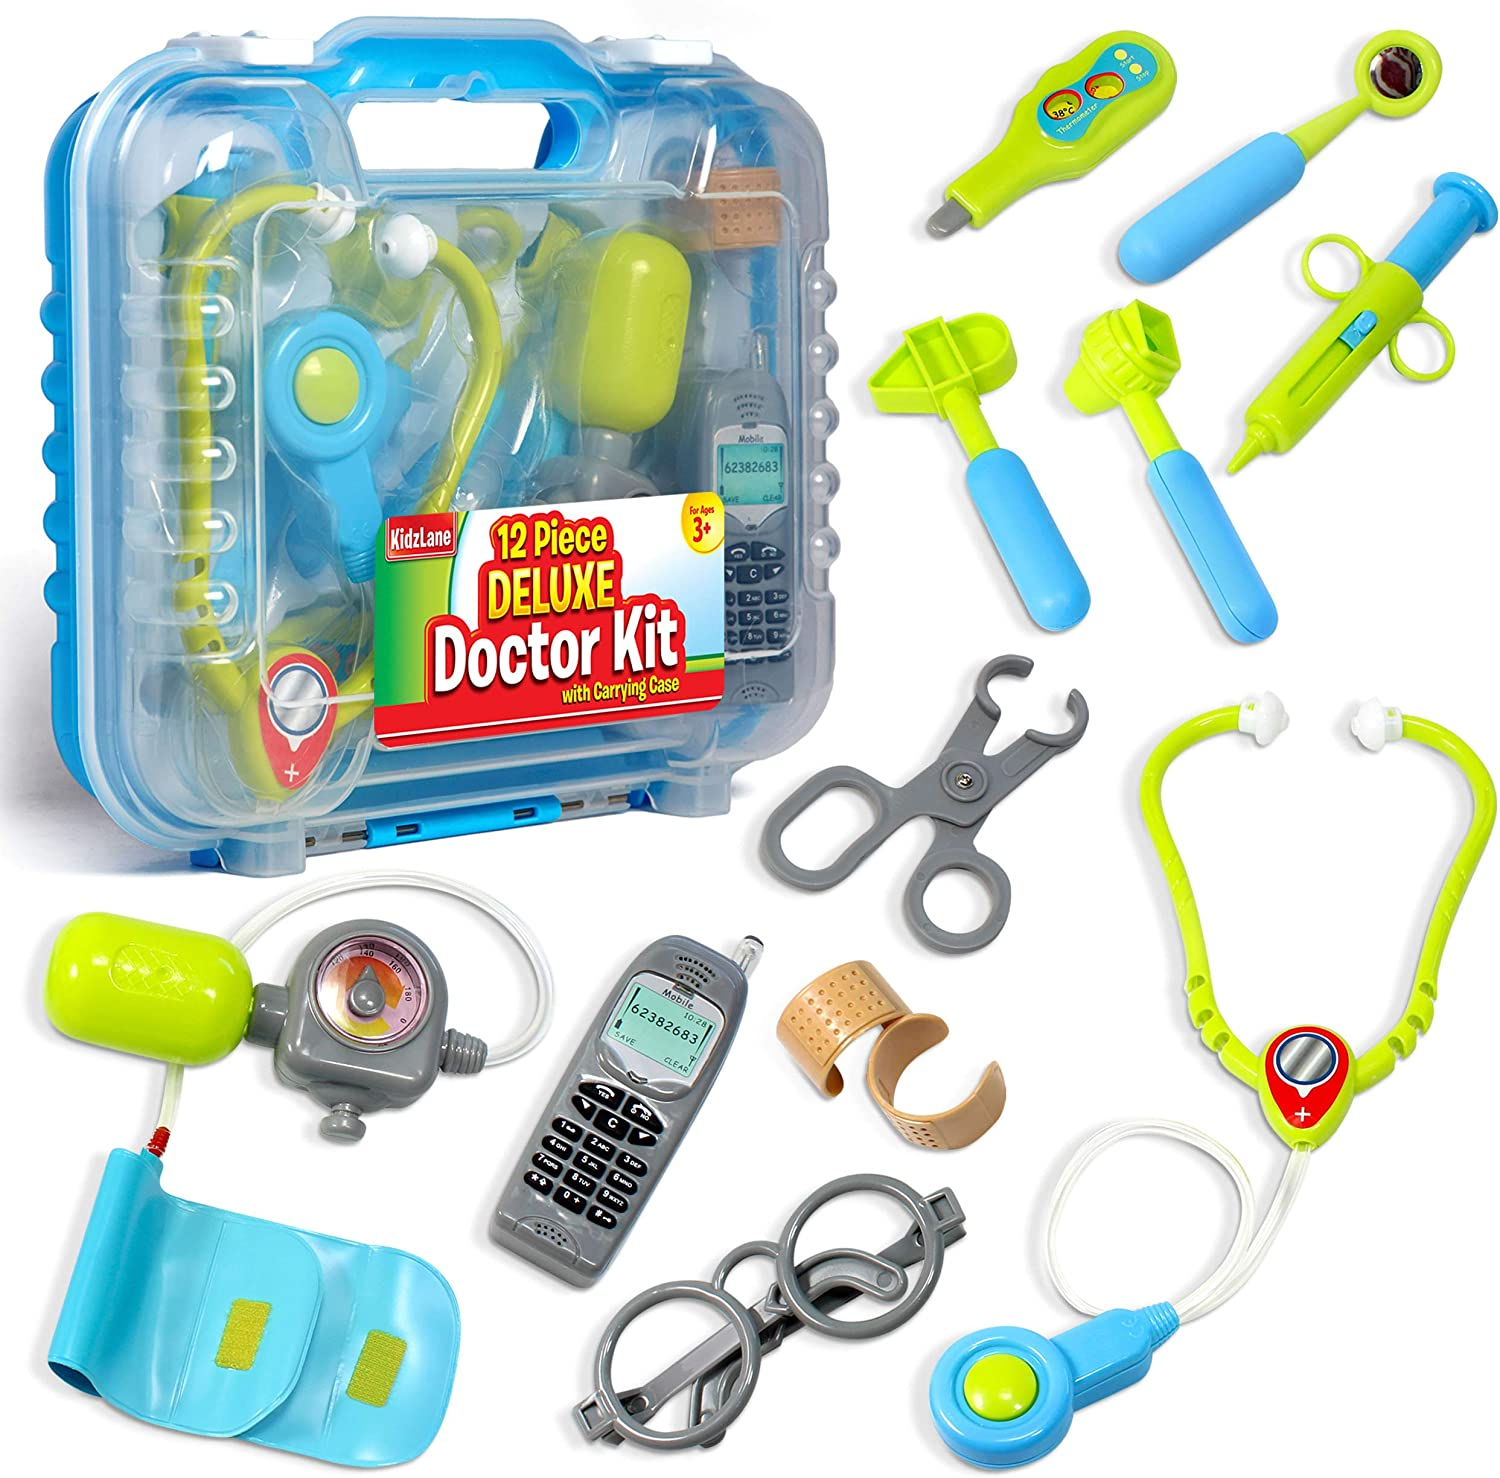 Doctor Kit for Kids